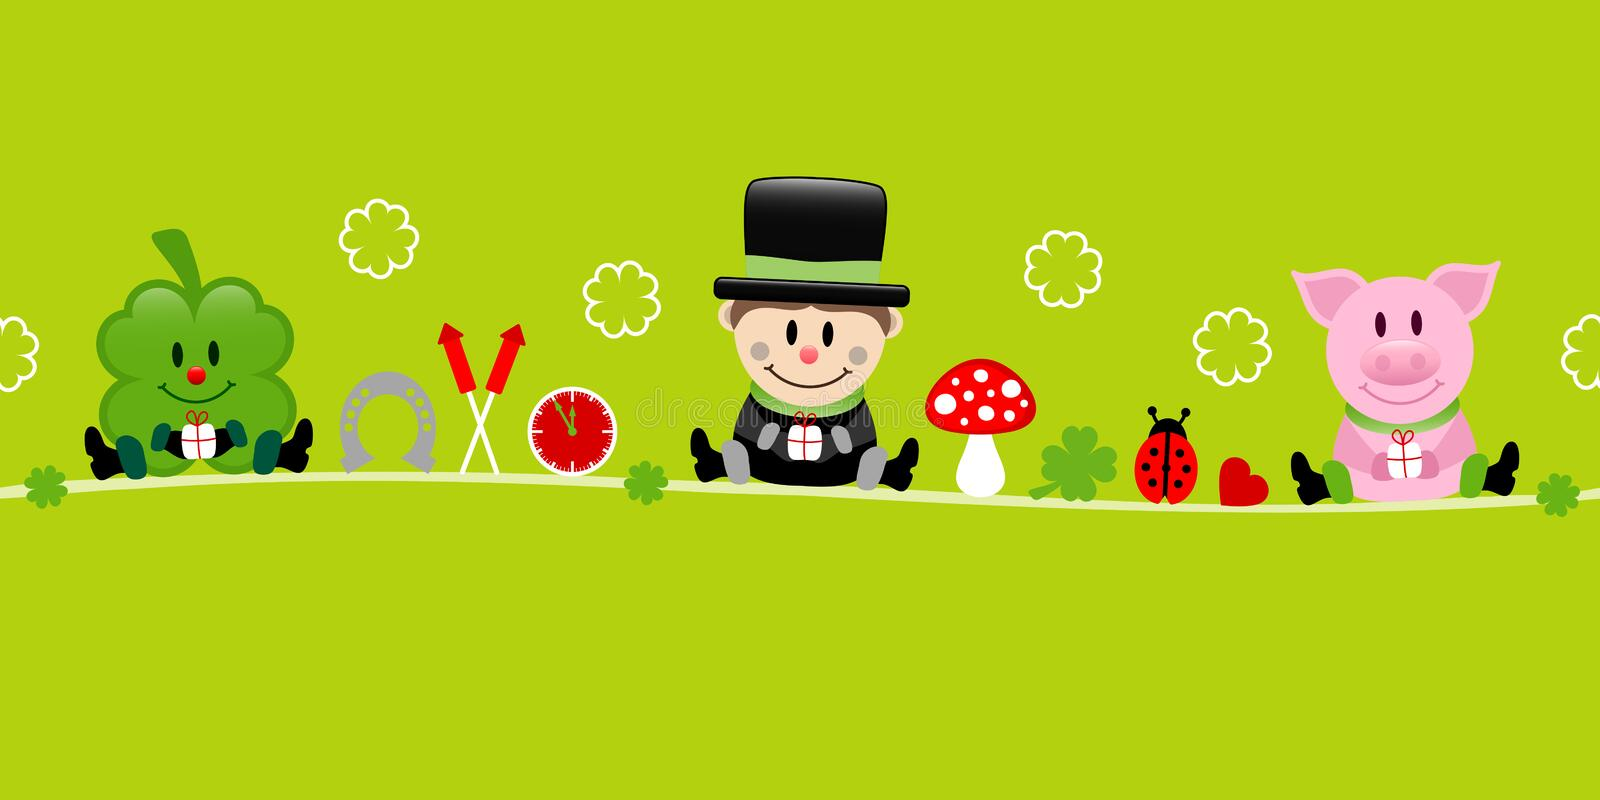 Shamrock Chimney Sweep And Pig Icons New Years Eve Green. Cute Shamrock Chimney Sweep And Pig Icons New Years Eve Green royalty free illustration